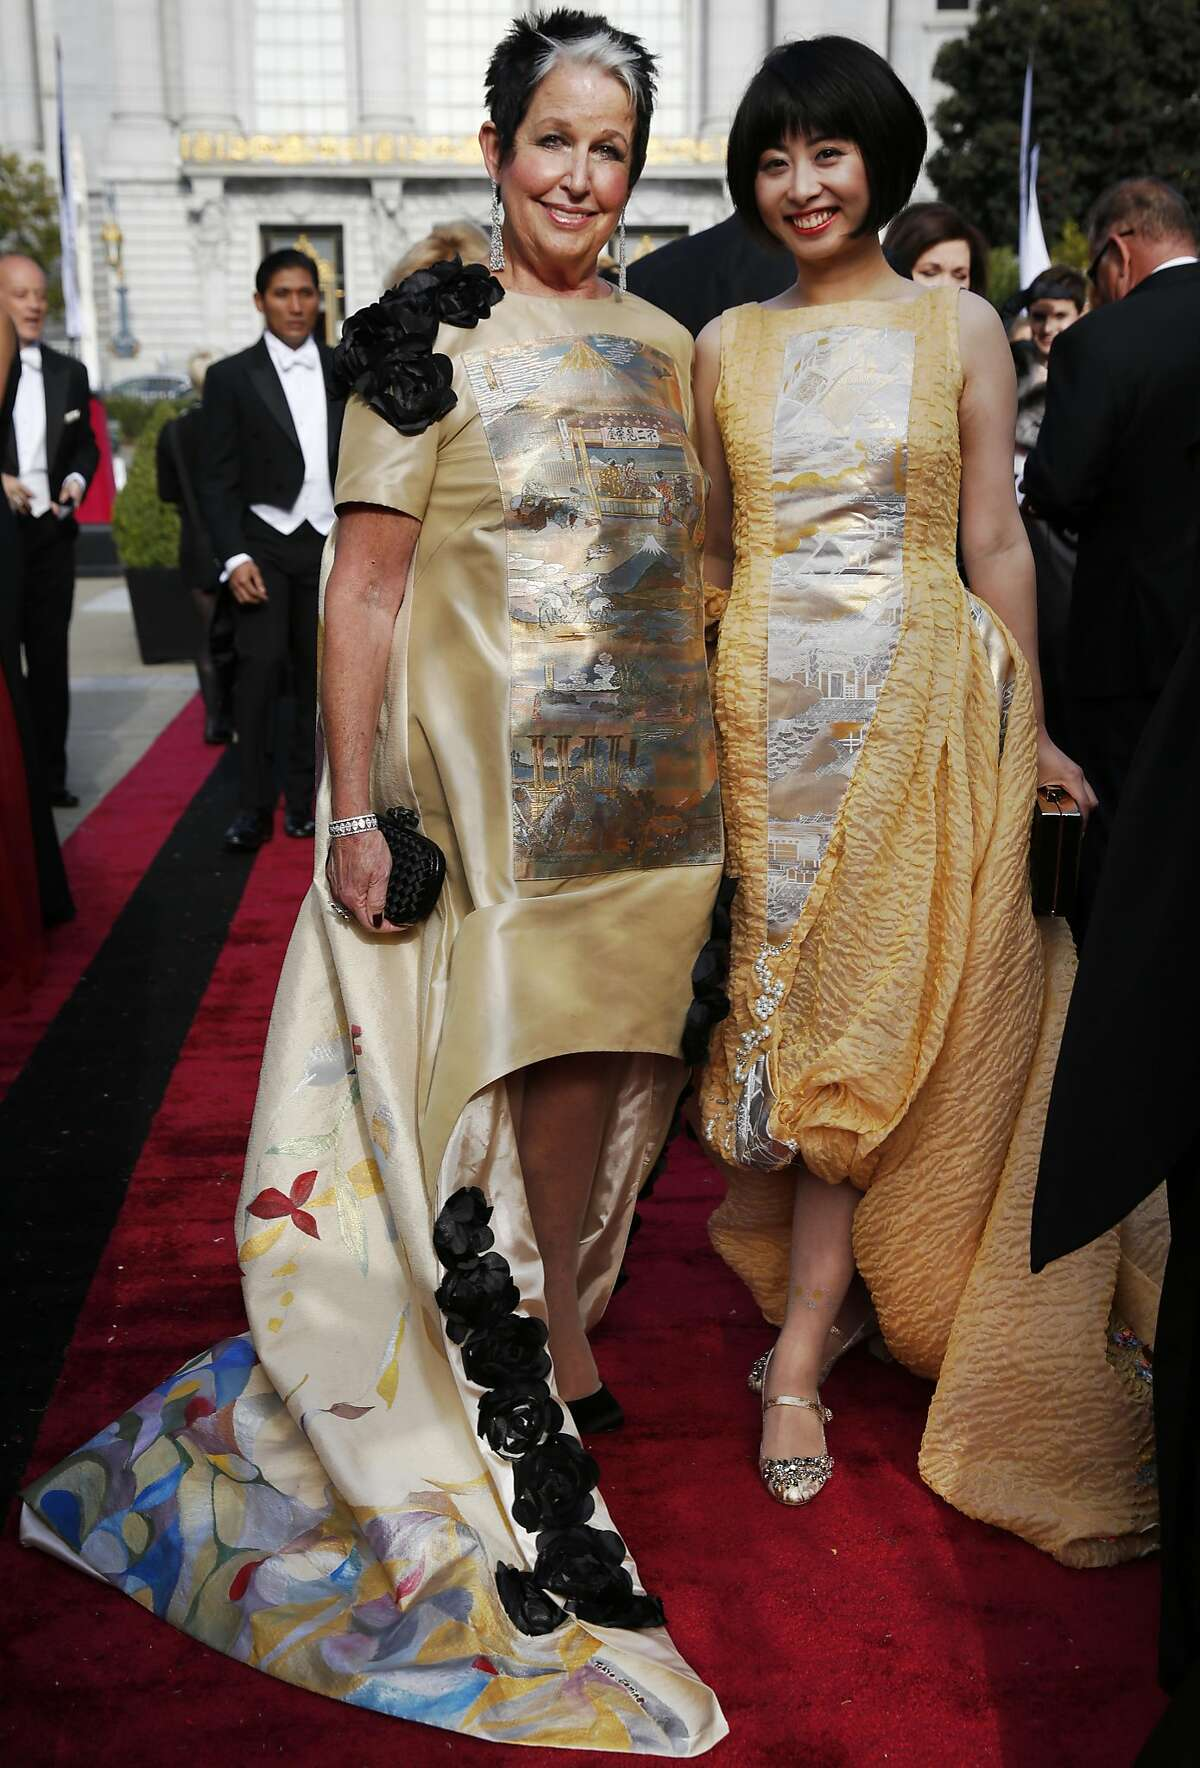 """Karen Kubin, left, pictured with Yuka """"Toyko Gamine"""" Uehara who designed both of their dresses at the Opera Ball, celebrating the opening night of the San Francisco Opera Sept. 9, 2016 in San Francisco, Calif."""